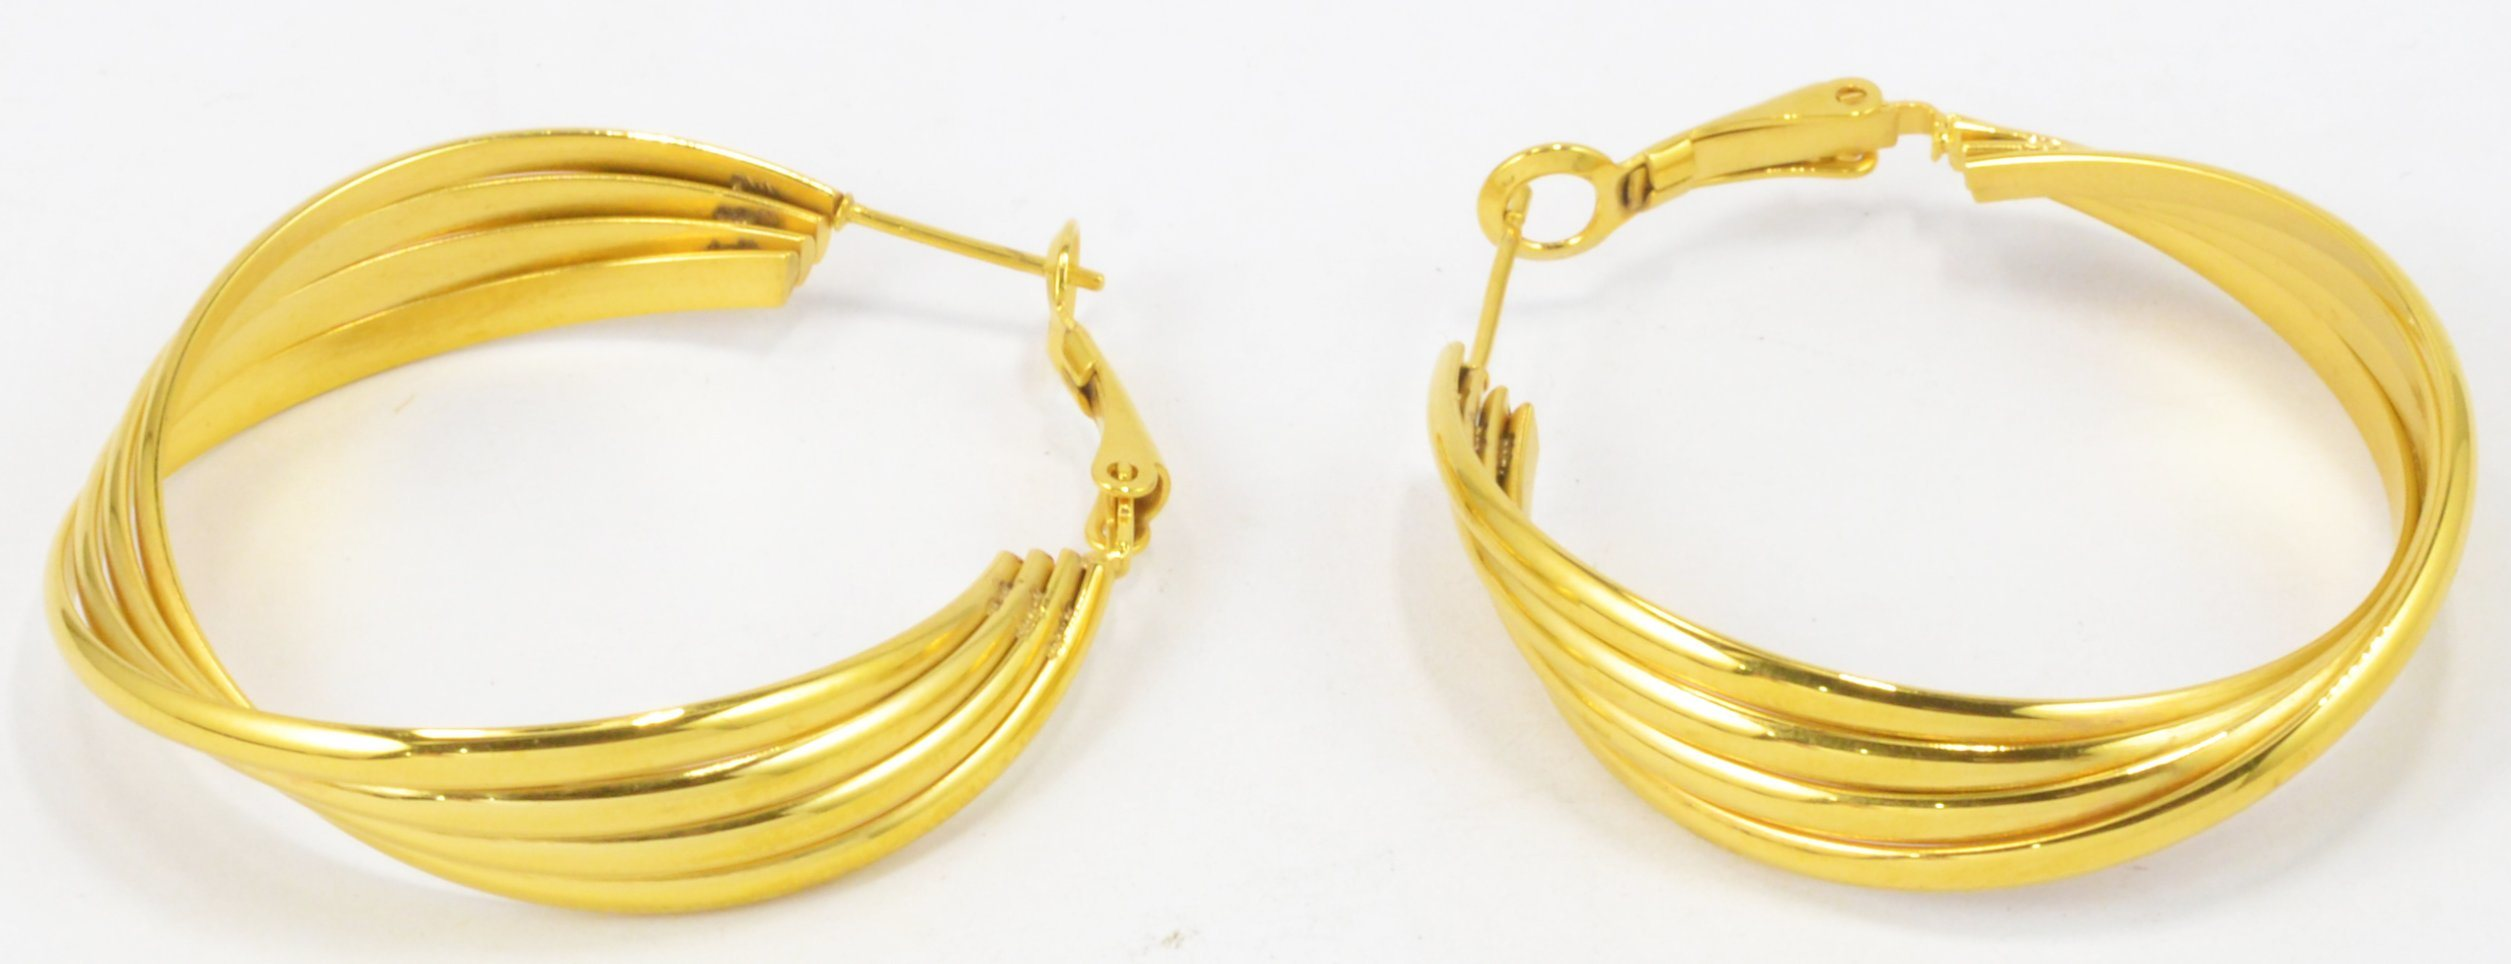 Wholesale Hot Sale Stainless Steel Self Piercing Hoop Earrings